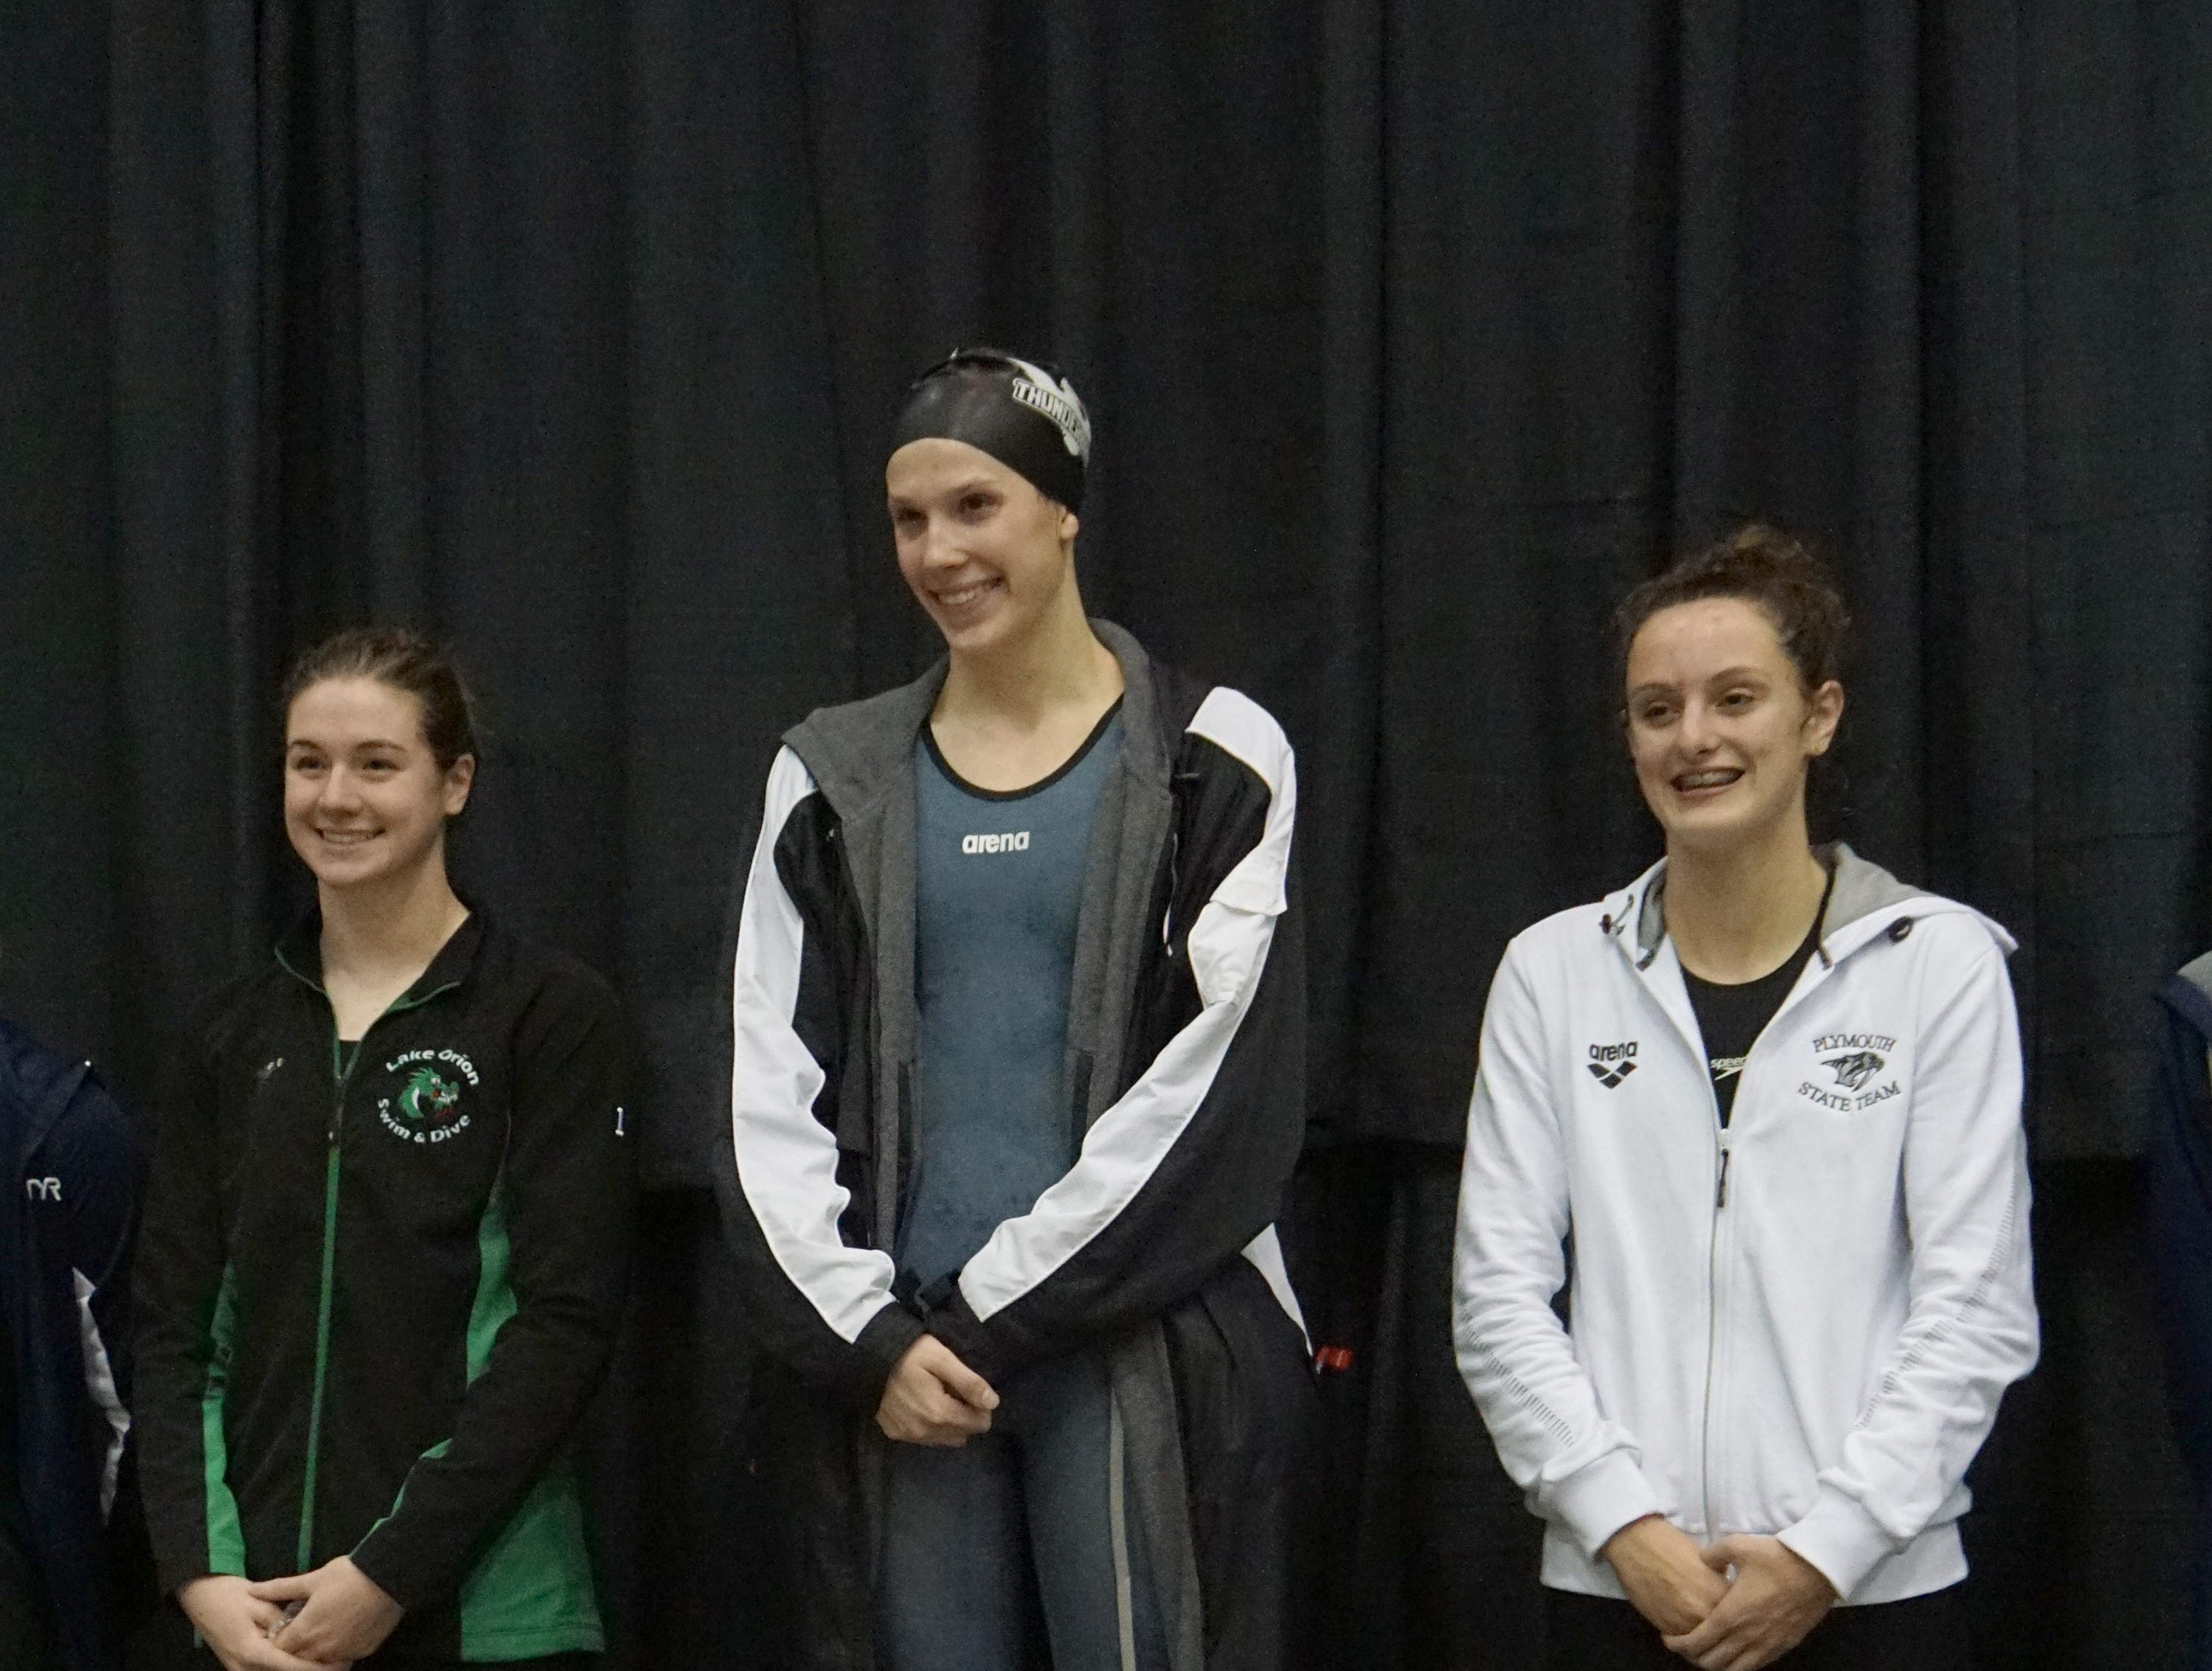 Farmington/Harrison's Ashley turak stands on the podium after winning the 50-yard freestyle at the Division 1 girls swimming and diving championships held at Eastern Michigan University Nov. 17, 2018.